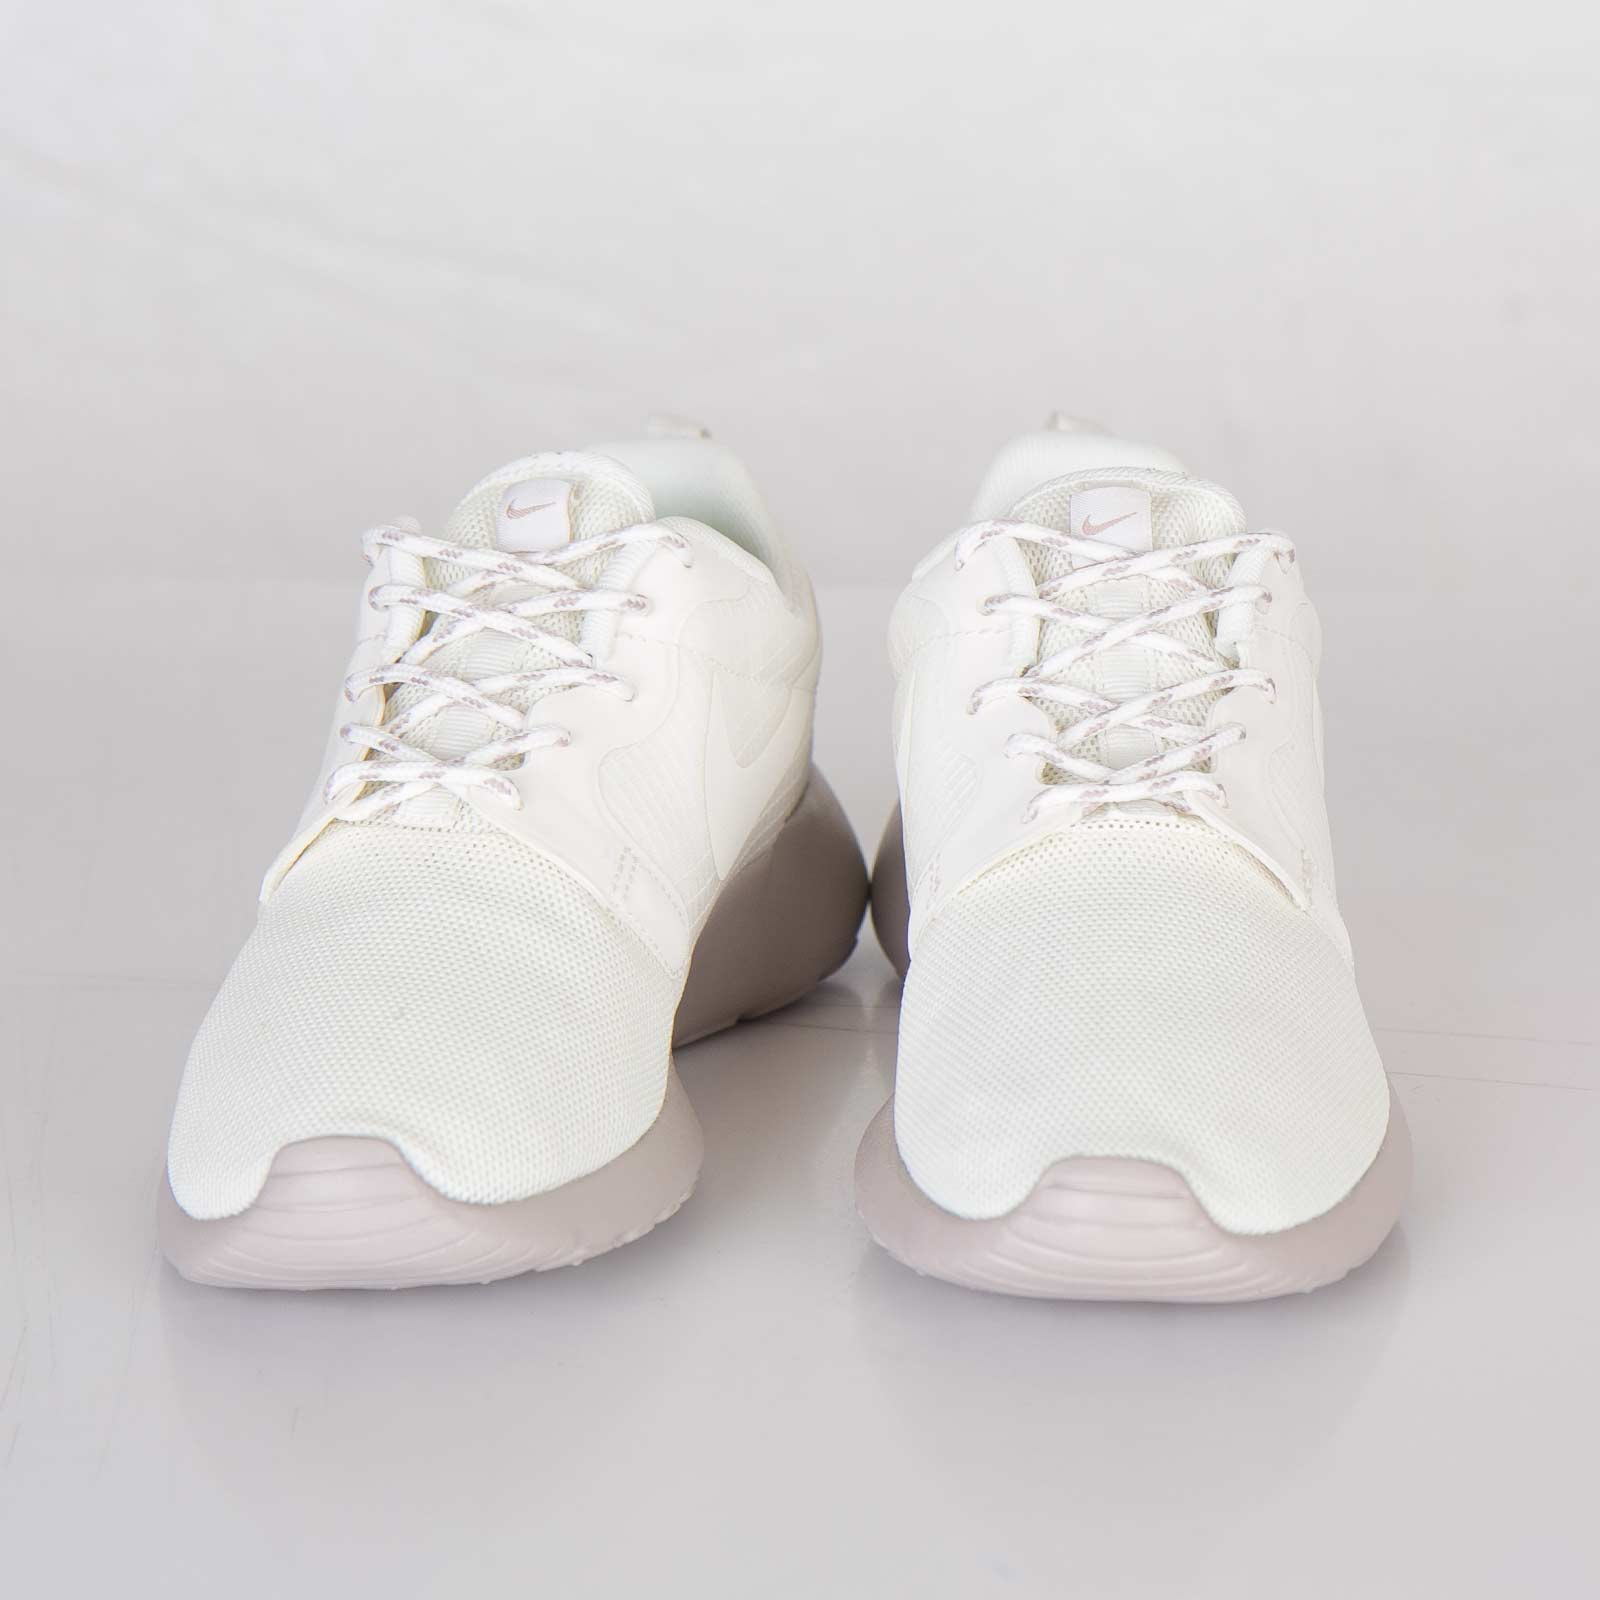 new products f76ae a239b Nike Wmns Roshe Run Hyperfuse - 642233-100 - Sneakersnstuff   sneakers    streetwear online since 1999